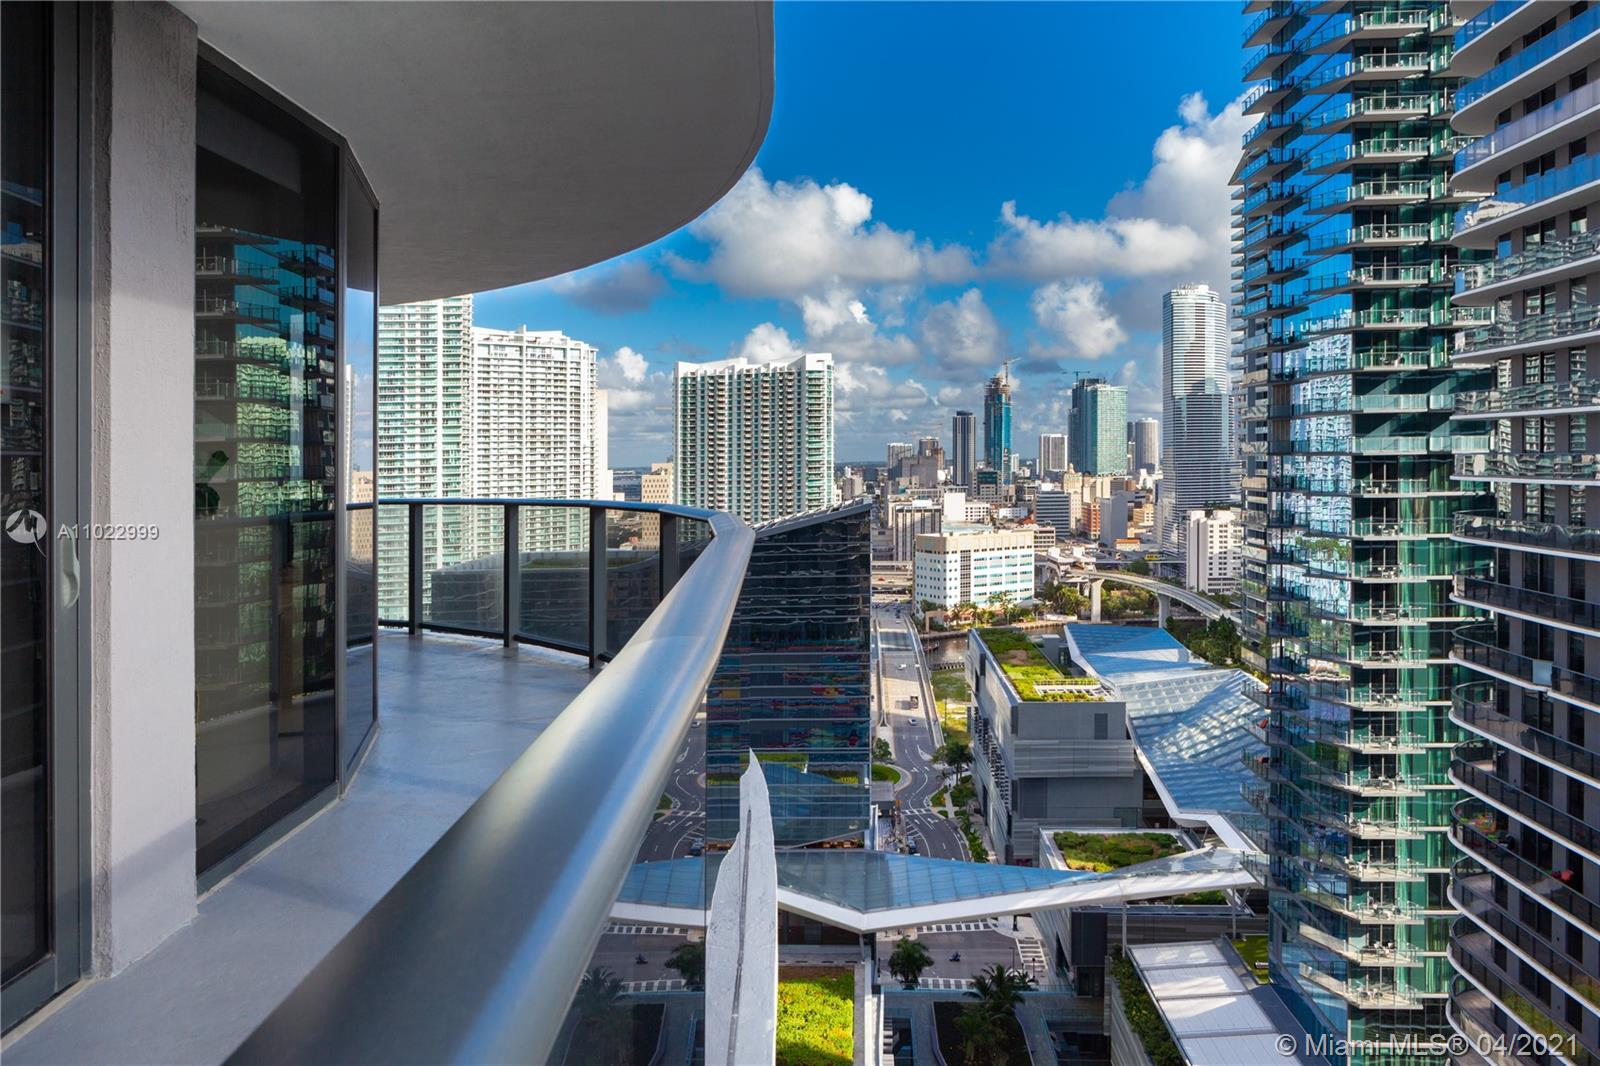 Motivated seller. 3D Tour available. Unit has a two-year lease ending in Jan 2022 at $3200 a month. Stunning 2 BR+ 2 BA. Floor to ceiling impact windows. Top of the line appliances, open kitchen, 1 assigned parking space included. Beautiful views from the 23rd floor see as far to the open ocean. Large wraparound balcony. Enjoy the 6-star resort style amenities featuring outdoor fitness area, roof top pool, and the world famous equinox fitness center. Steps away from shops, restaurants, and entertainment. Great investment opportunity! Open to offers.